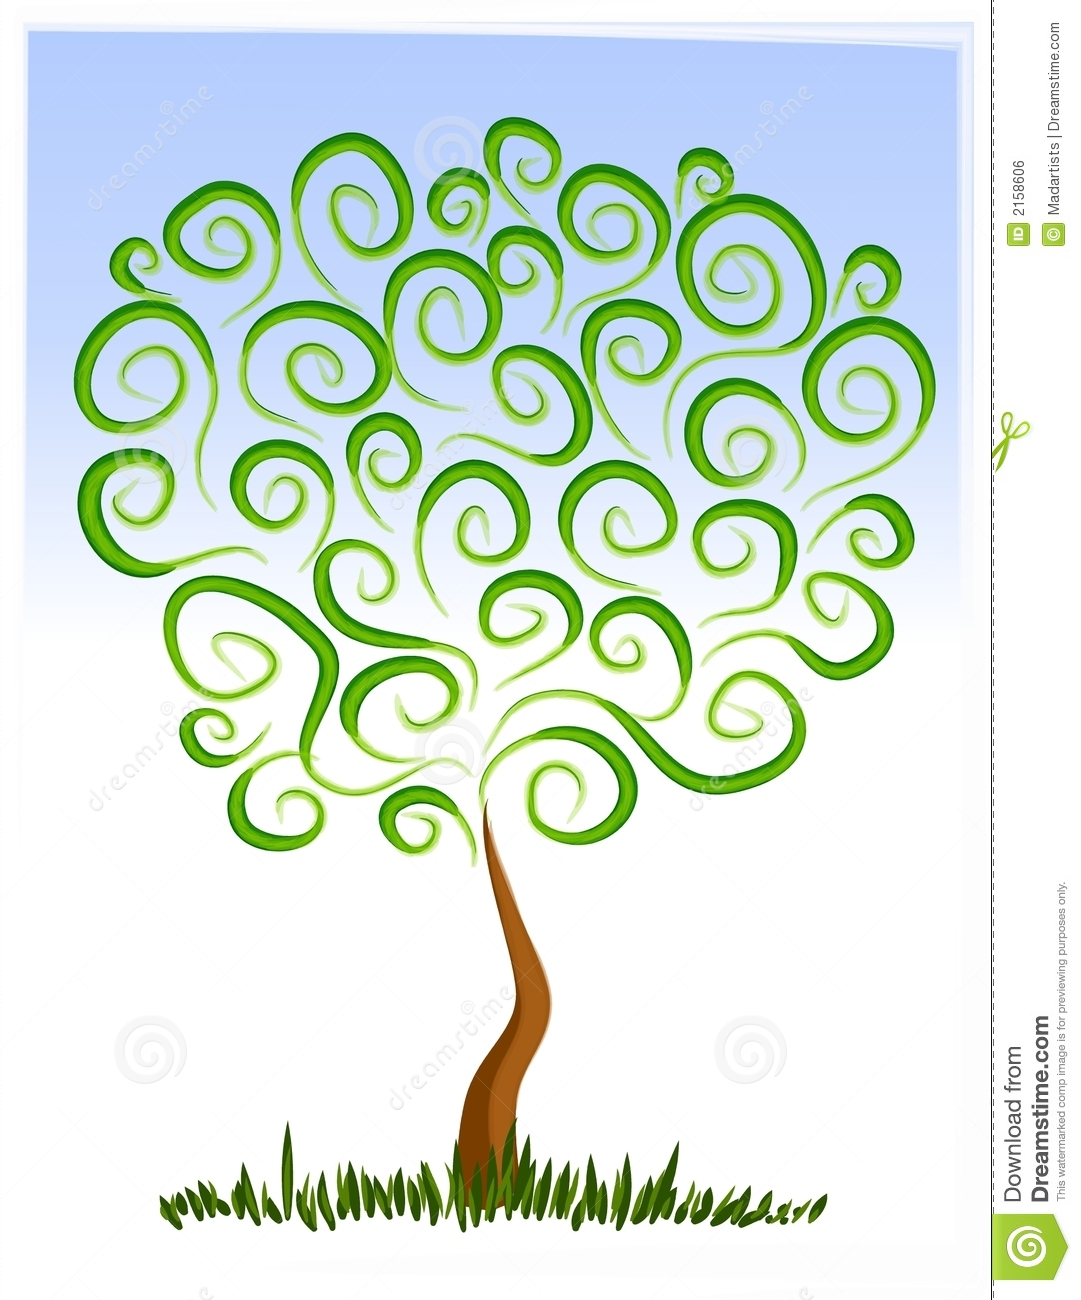 Abstract Tree Growing Clip Art Royalty Free Stock Image ...